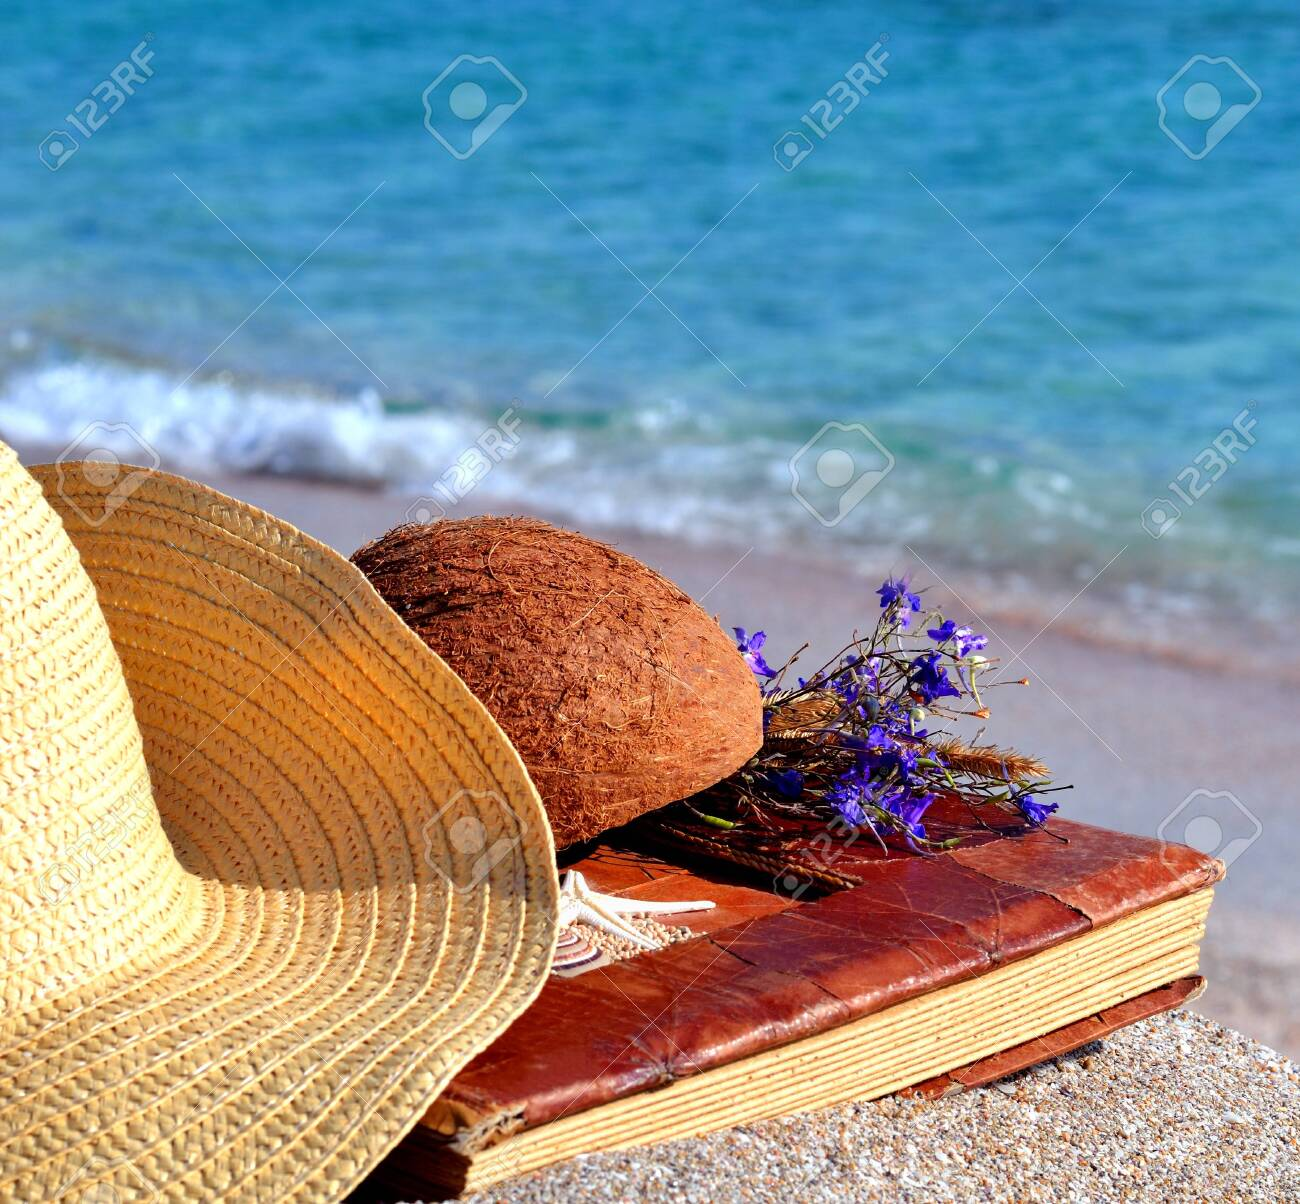 Vintage album with flower, hat and coconut on the seashore - 121736320